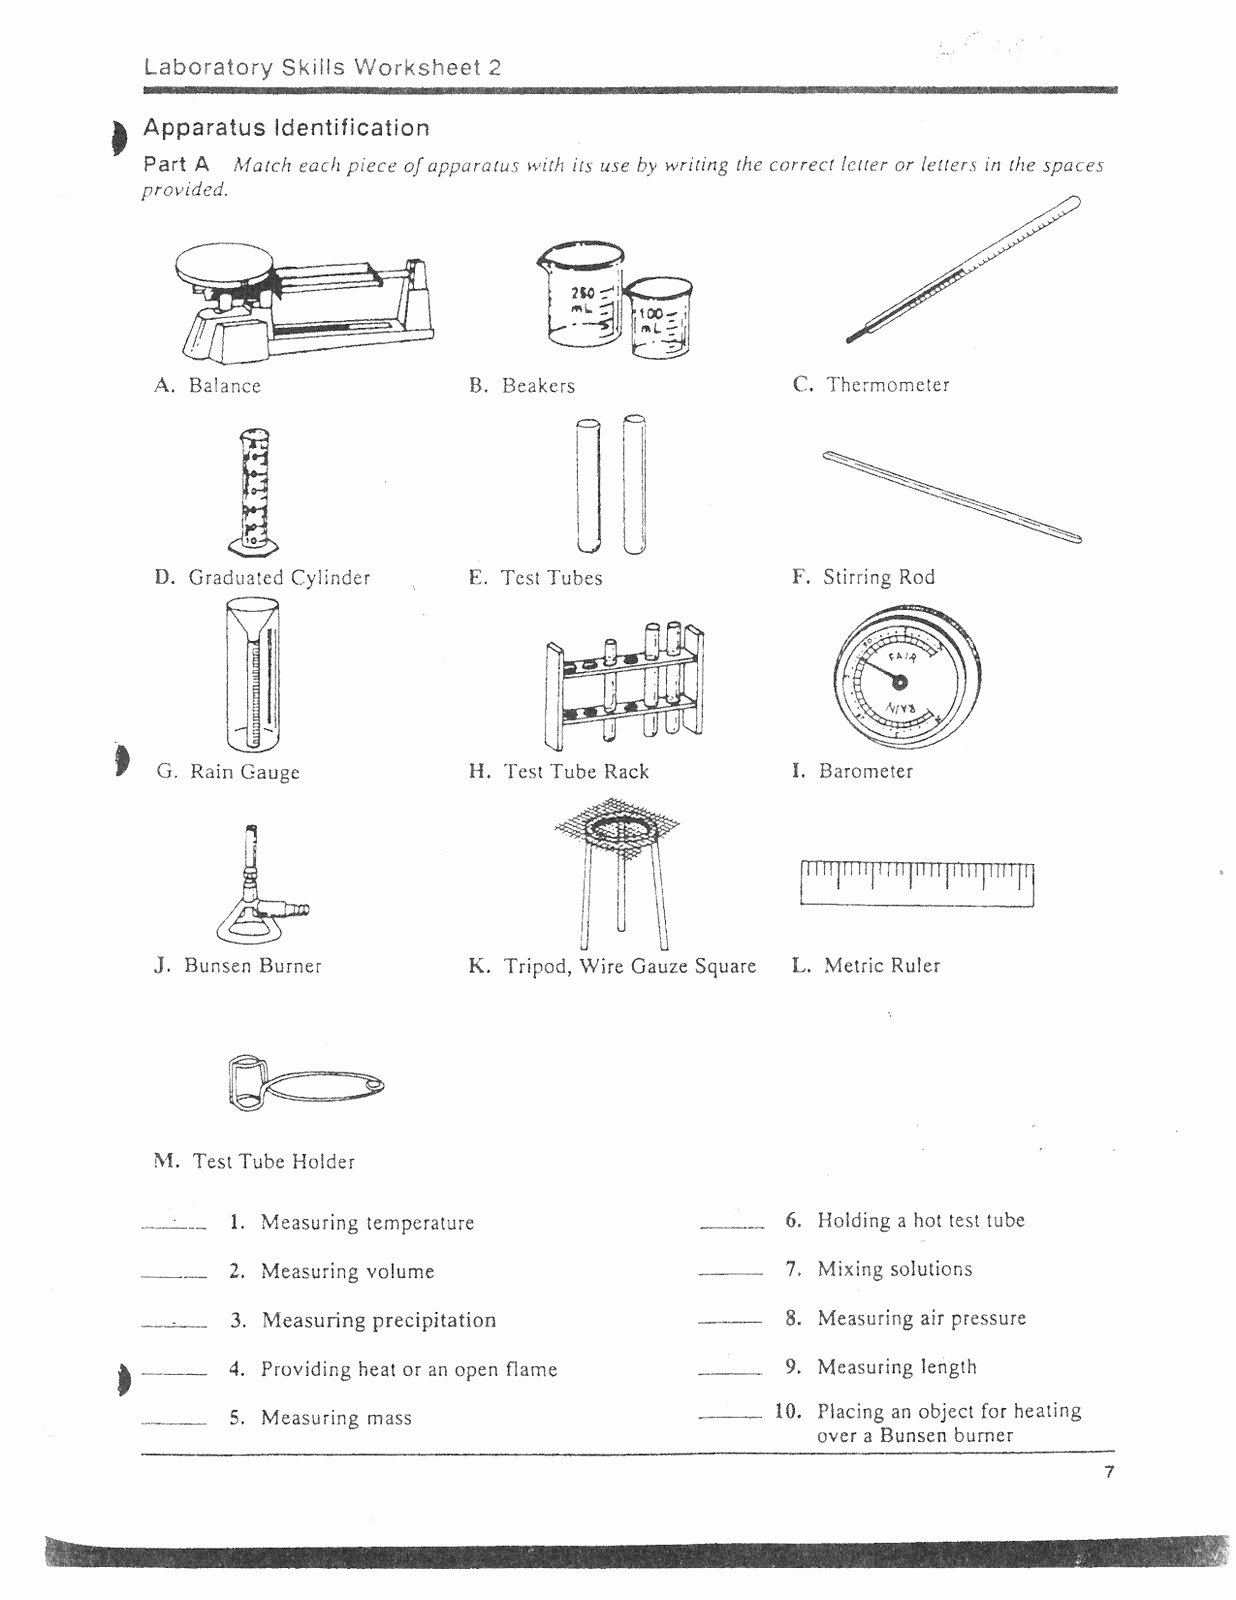 Chemistry Lab Equipment Worksheet Luxury Chemistry Worksheet Category Page 1 Worksheeto